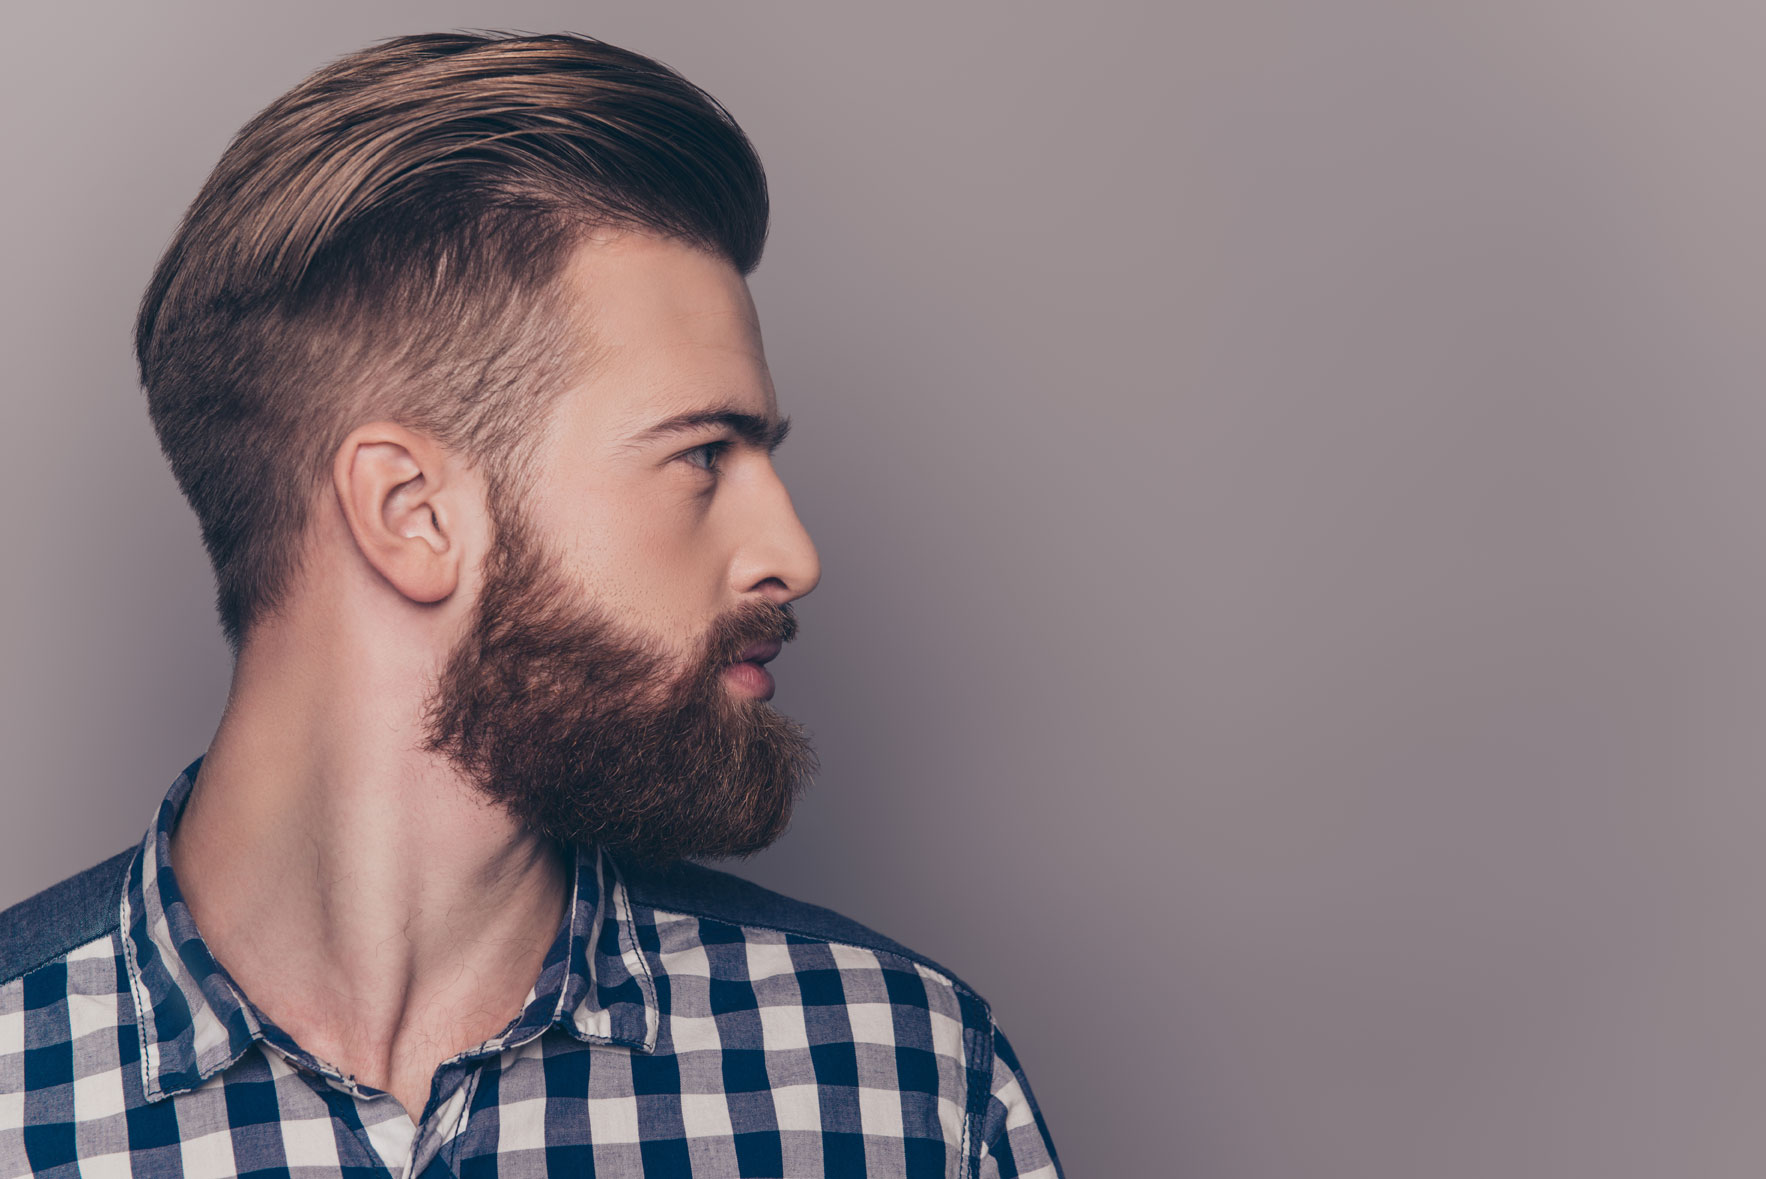 Stylish bearded guy looking to the side